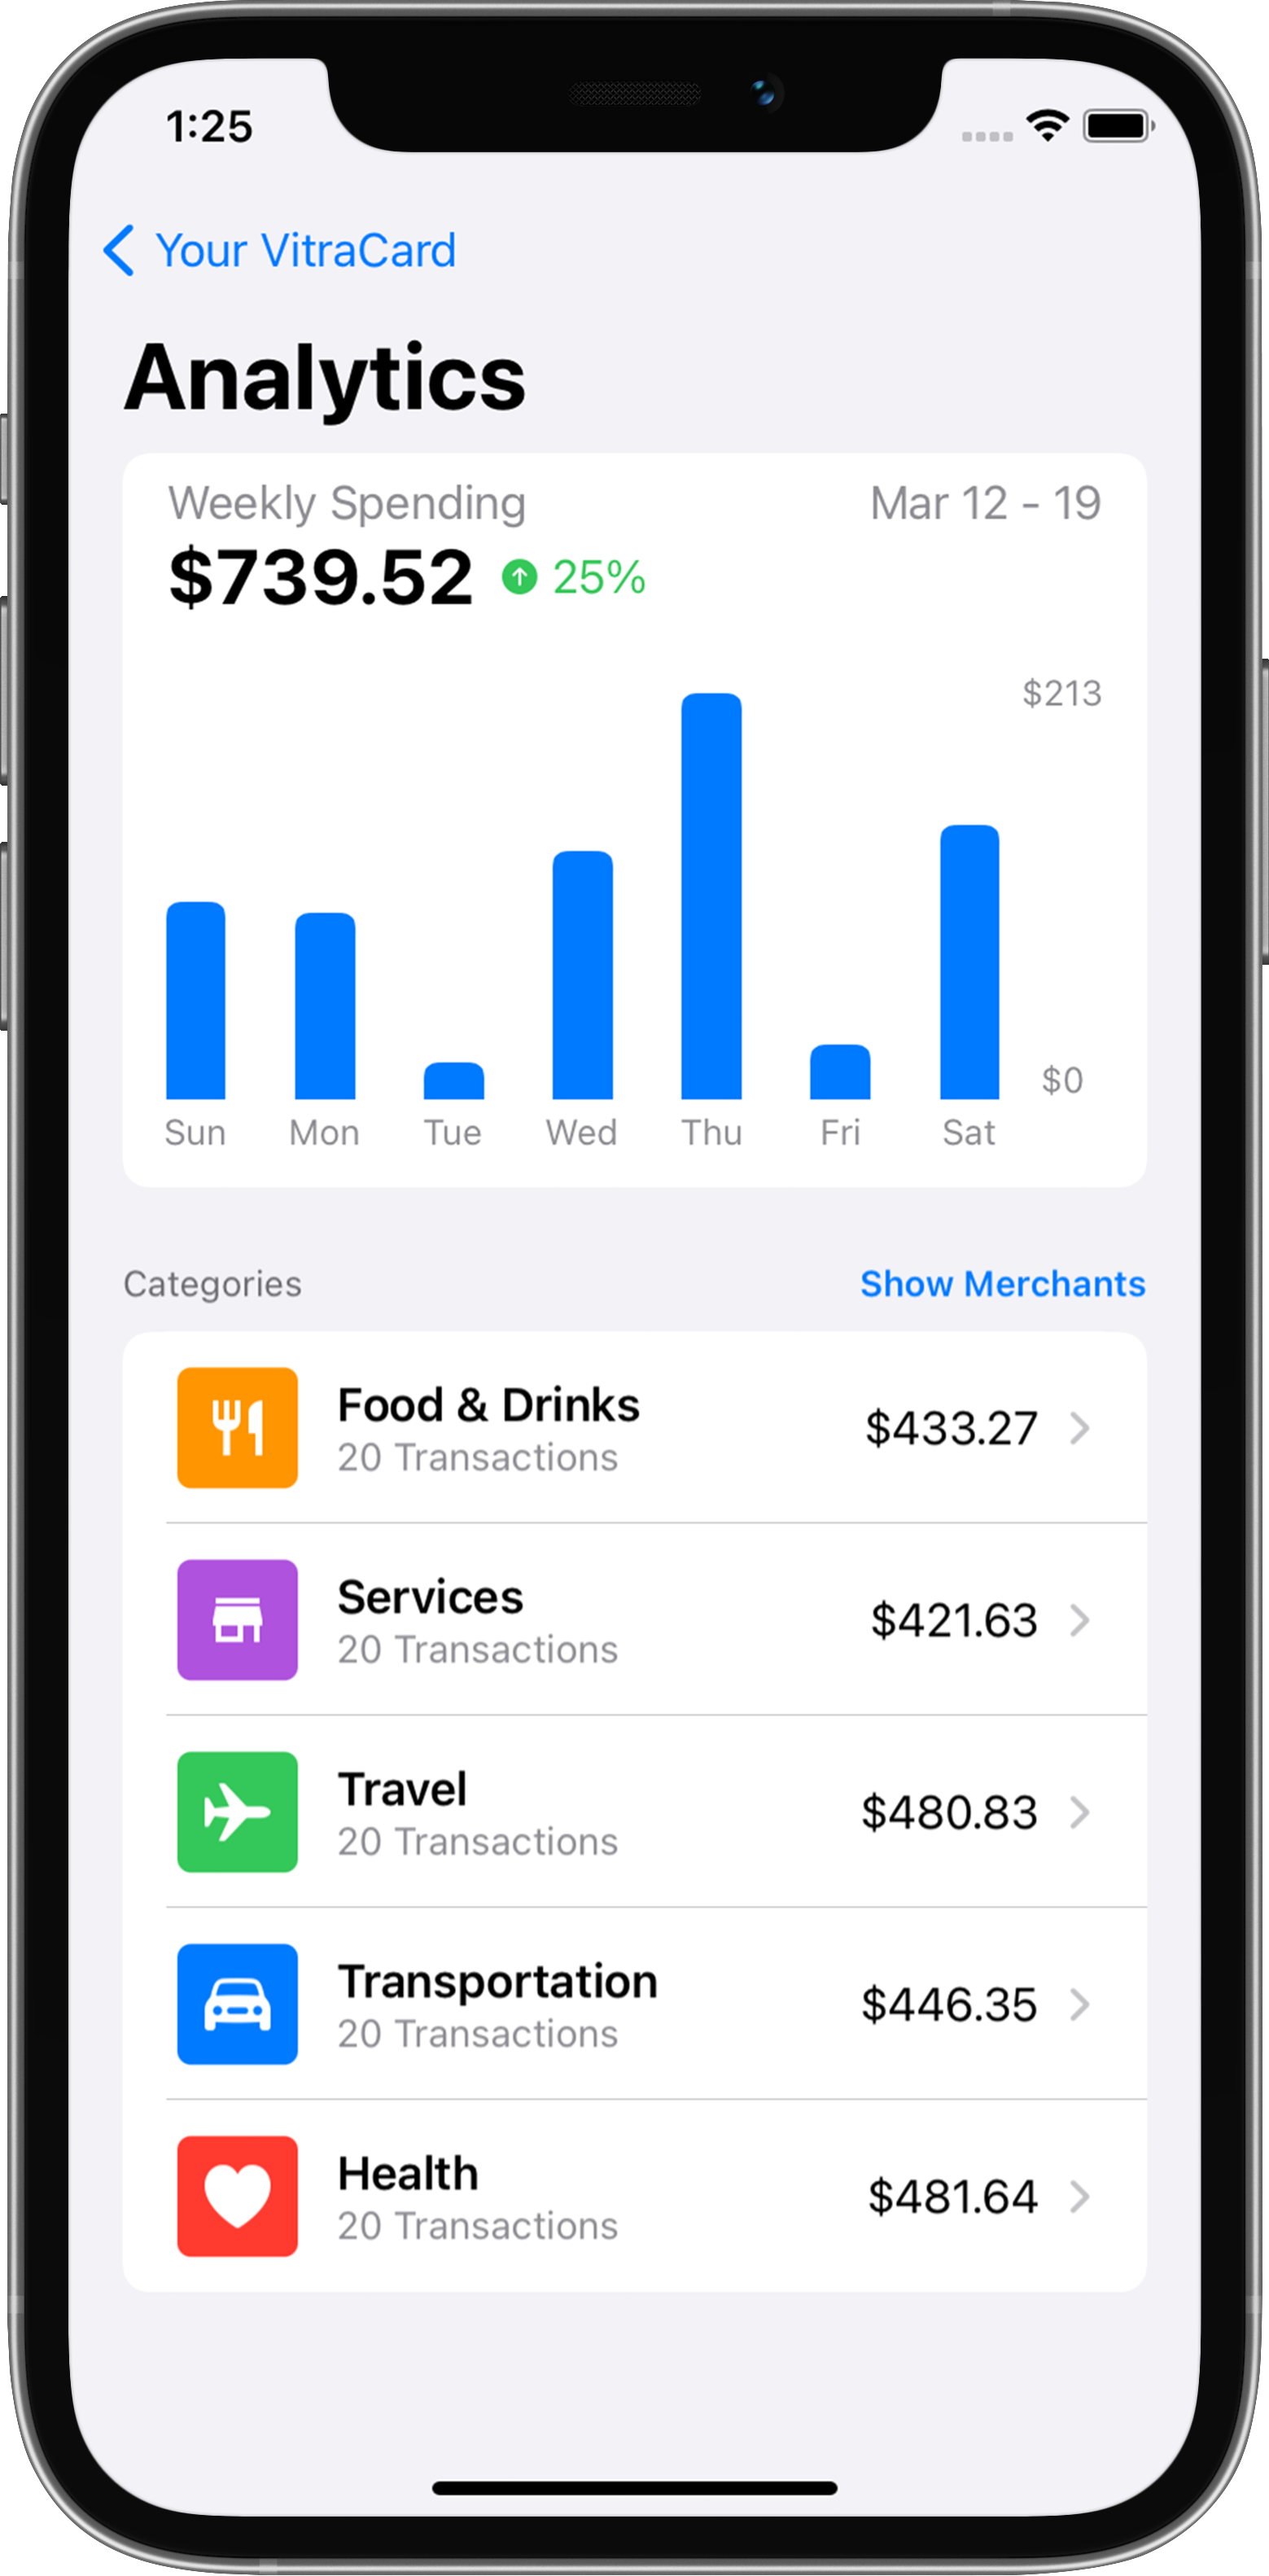 The VitraCash Analytics page showing weekly spending and categories you spend on most